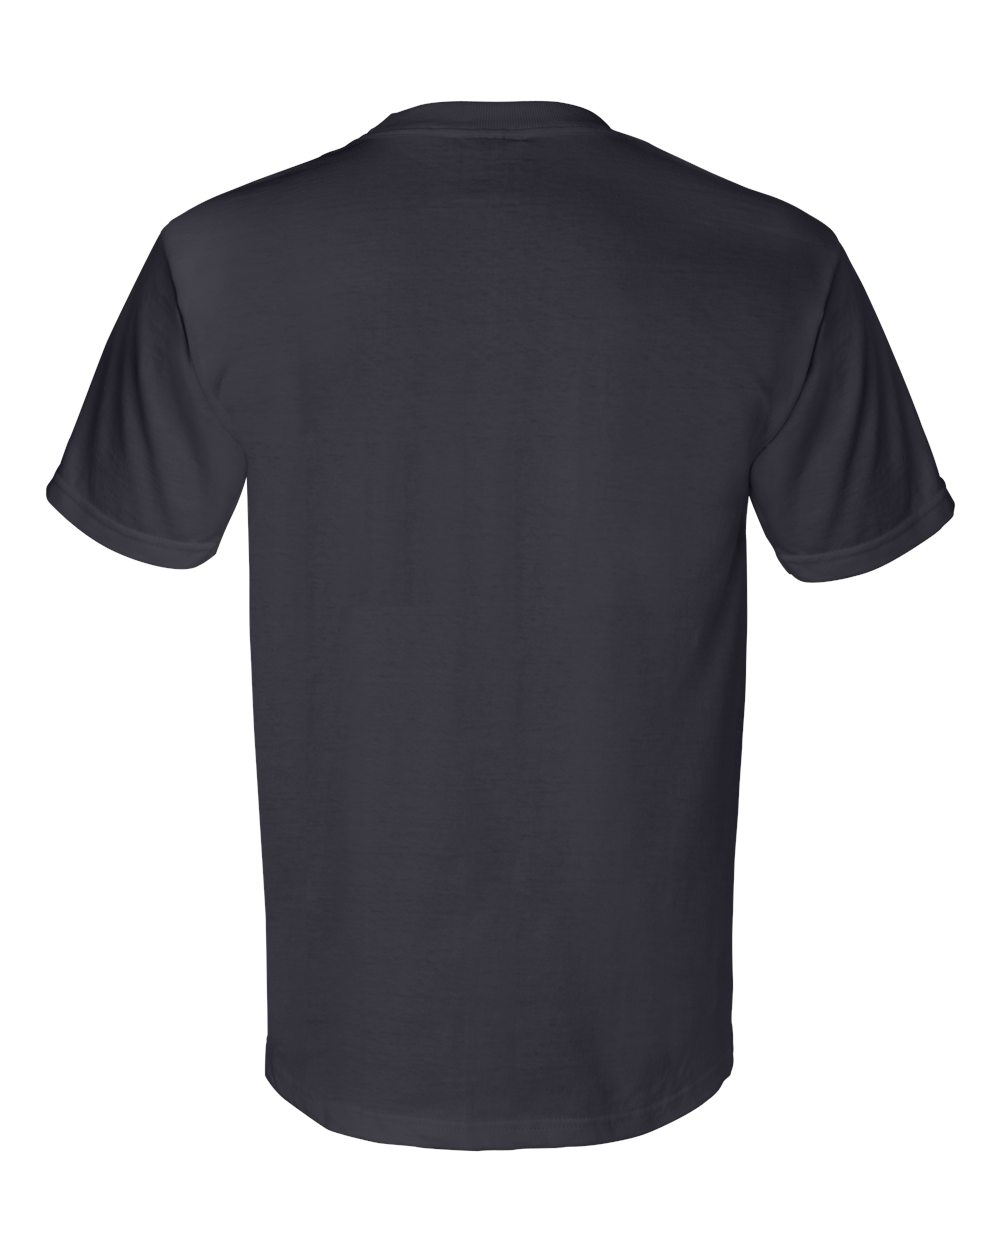 Bayside-Mens-Union-Made-Short-Sleeve-T-Shirt-with-a-Pocket-3015-up-to-3XL thumbnail 16